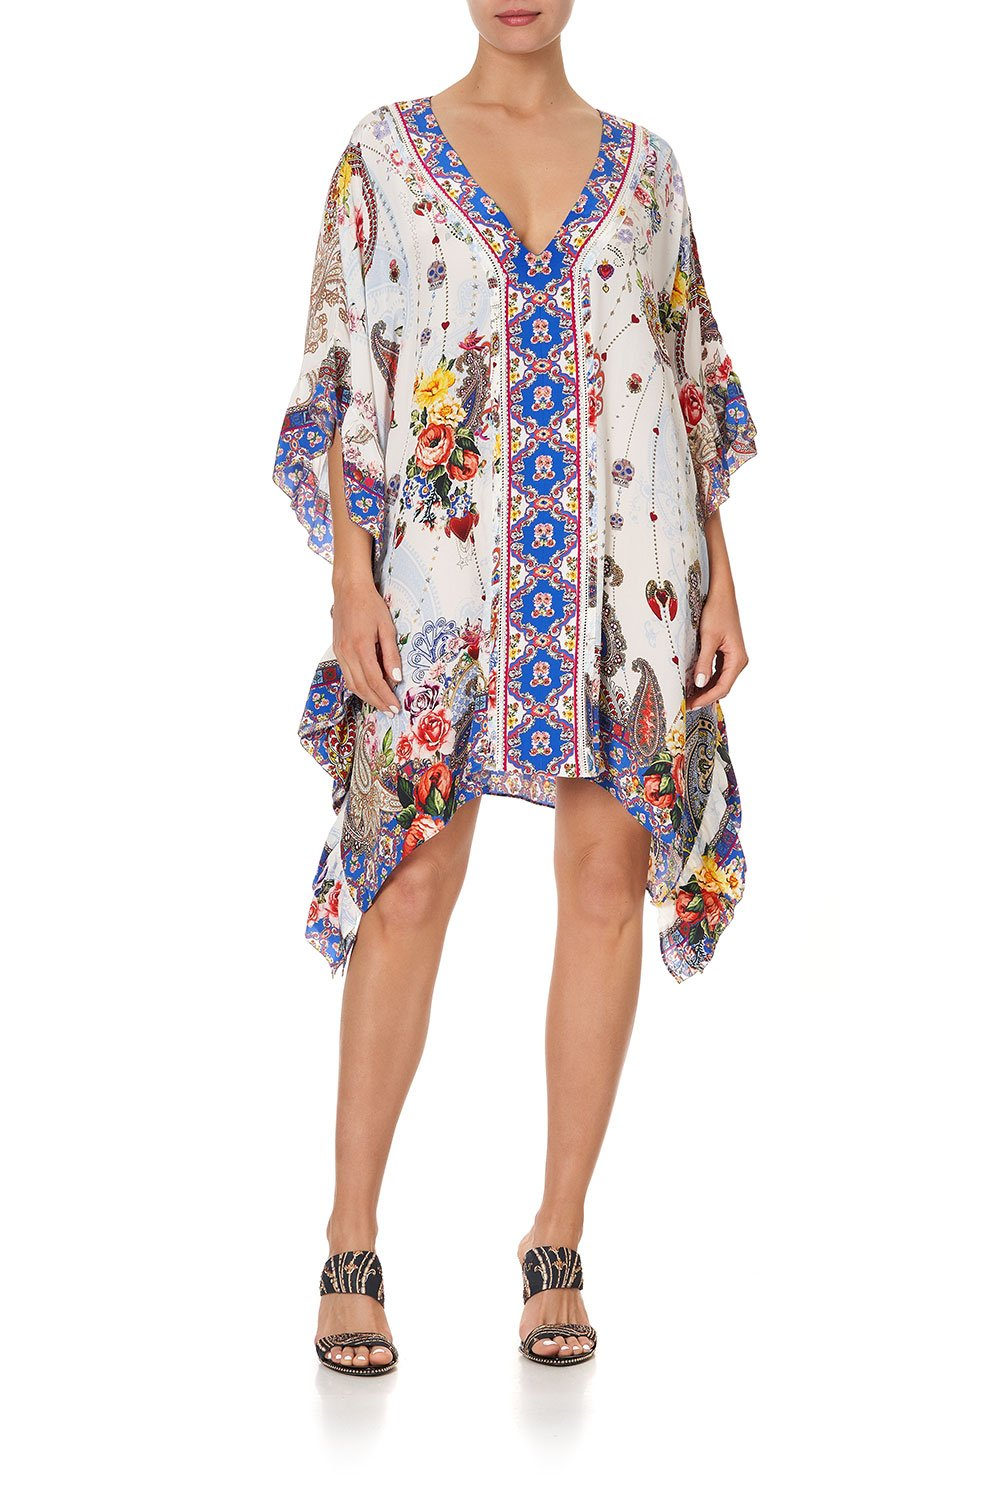 V-NECK KAFTAN WITH RUFFLE SLEEVE FRIDA FREEDOM